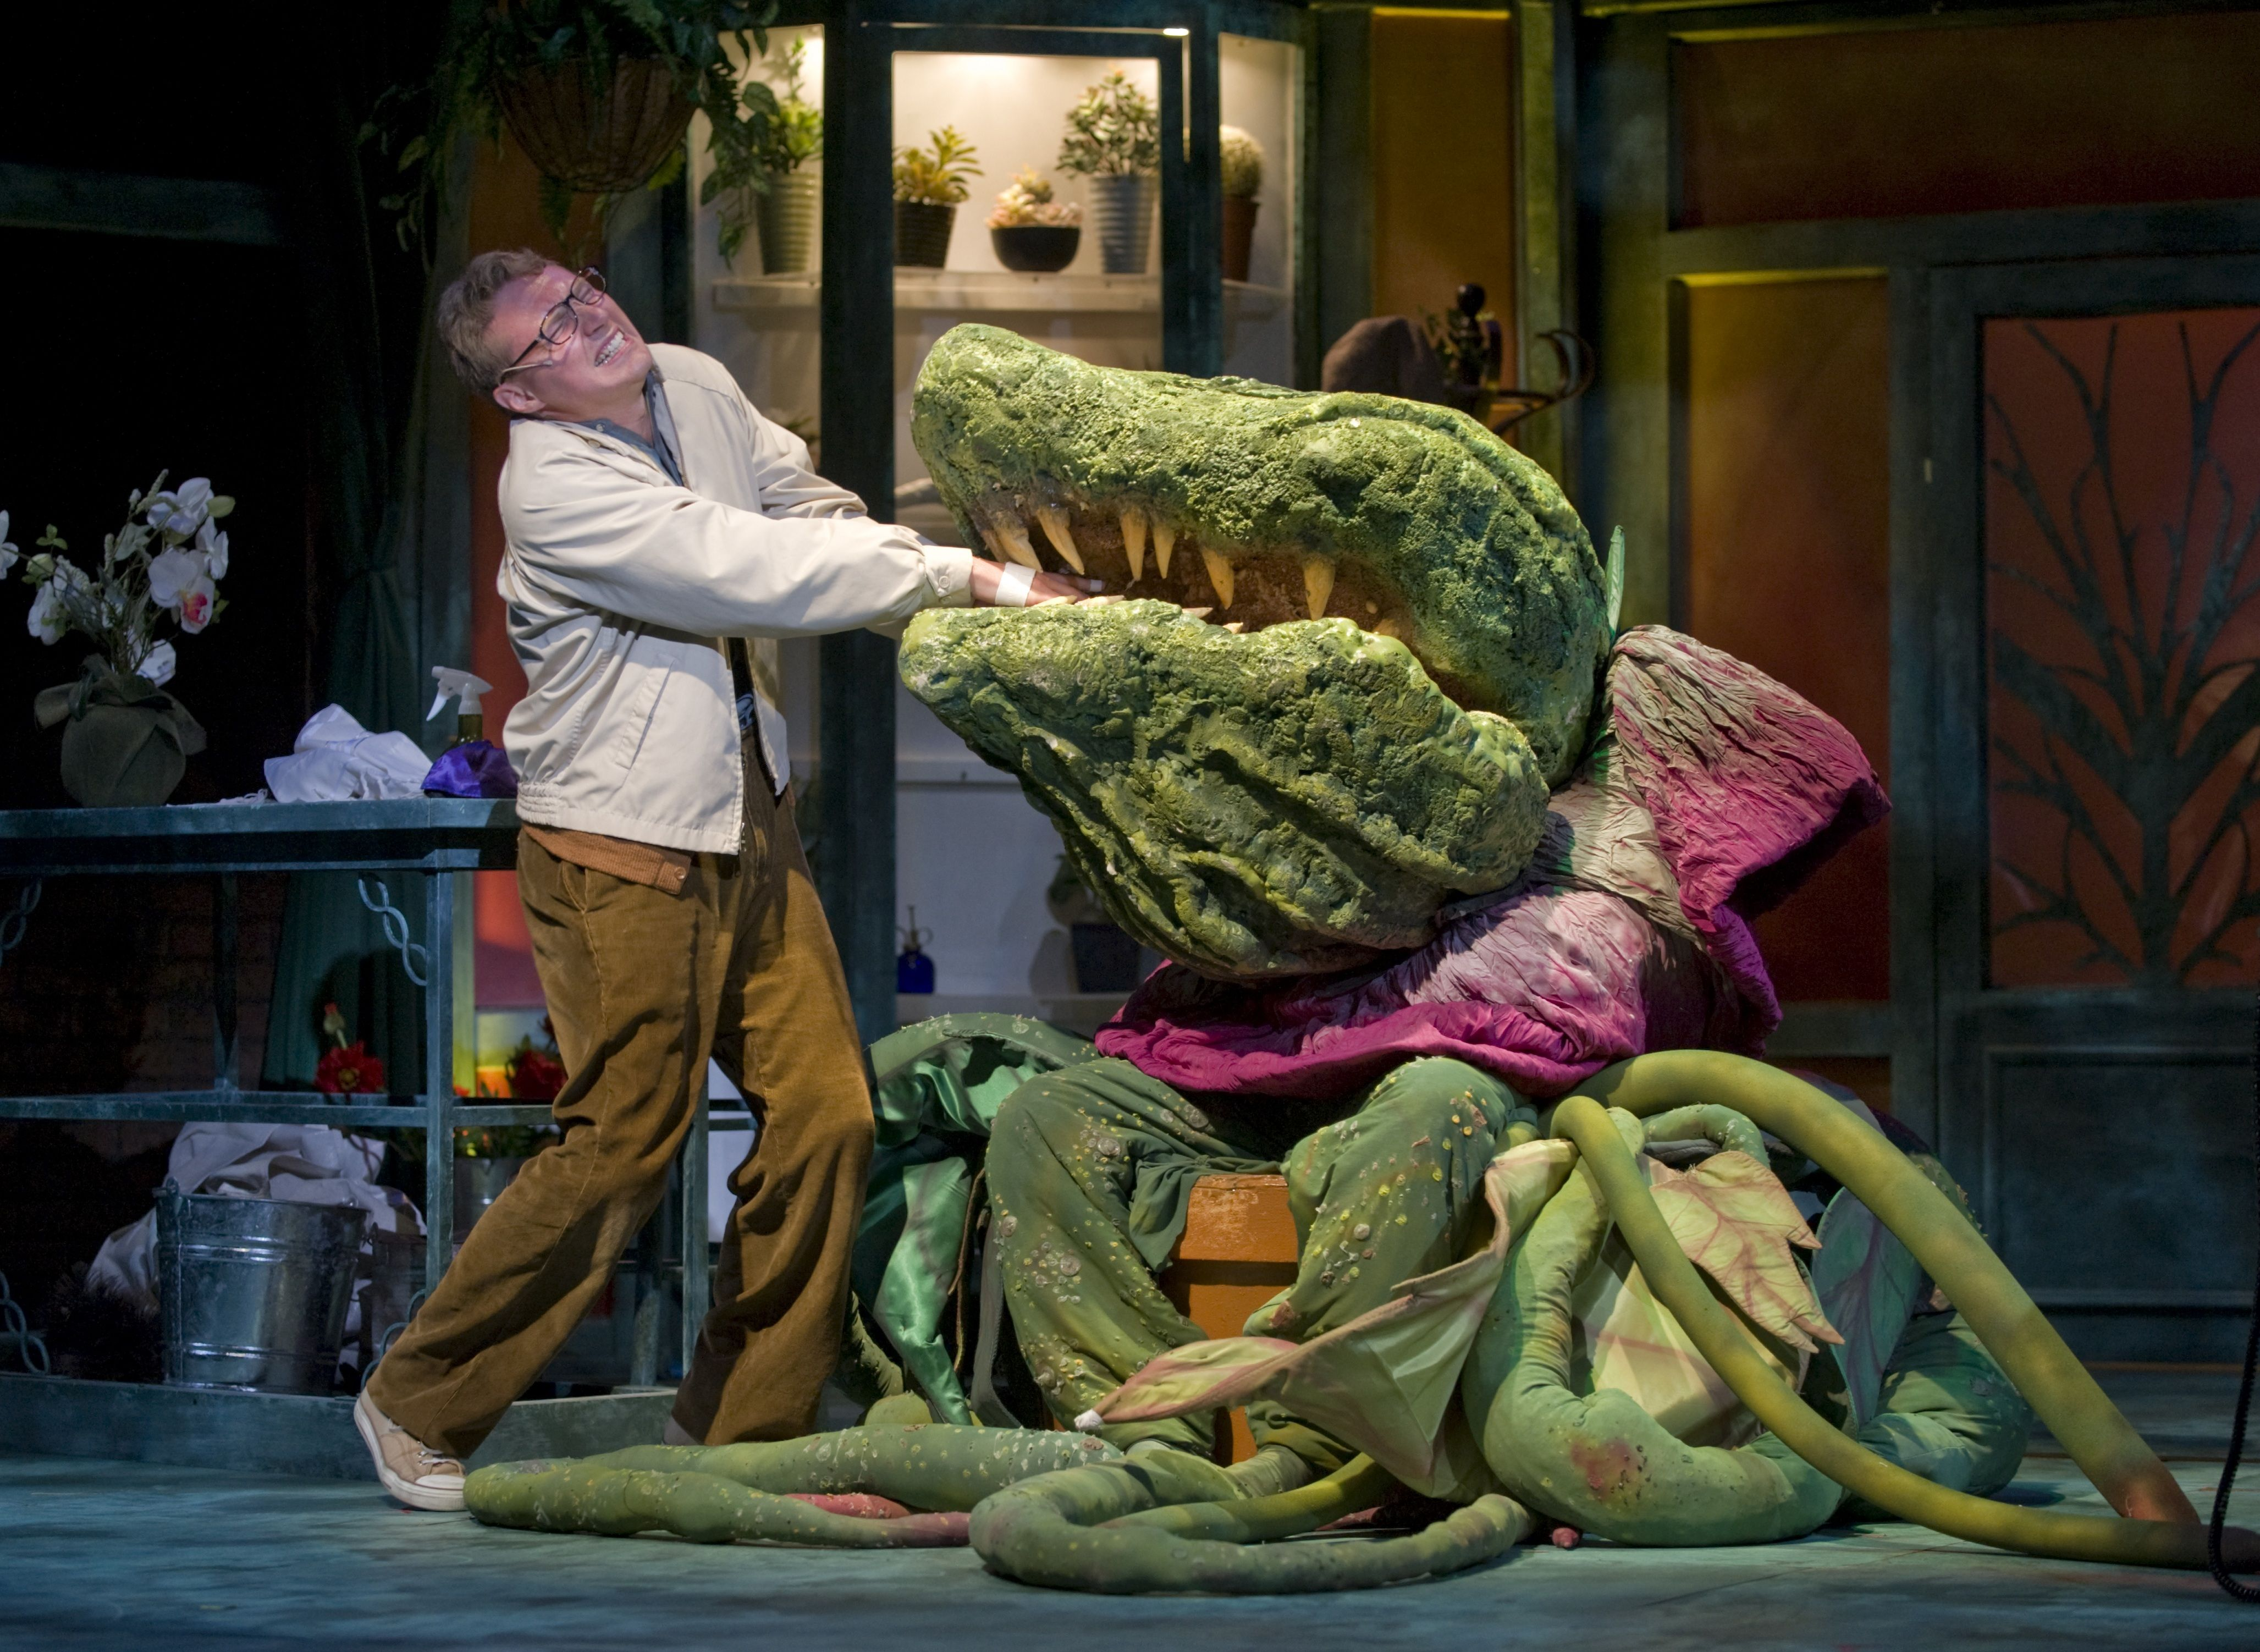 an analysis of the character of seymour in little shop of horrors The 1986 musical little shop of horrors is a camp horror imbued with catchy tunes and a rich broadway feel the story follows seymour krelborn (rick moranis) as the down-on-his-luck loser working at mr mushnik's failing flower shop.